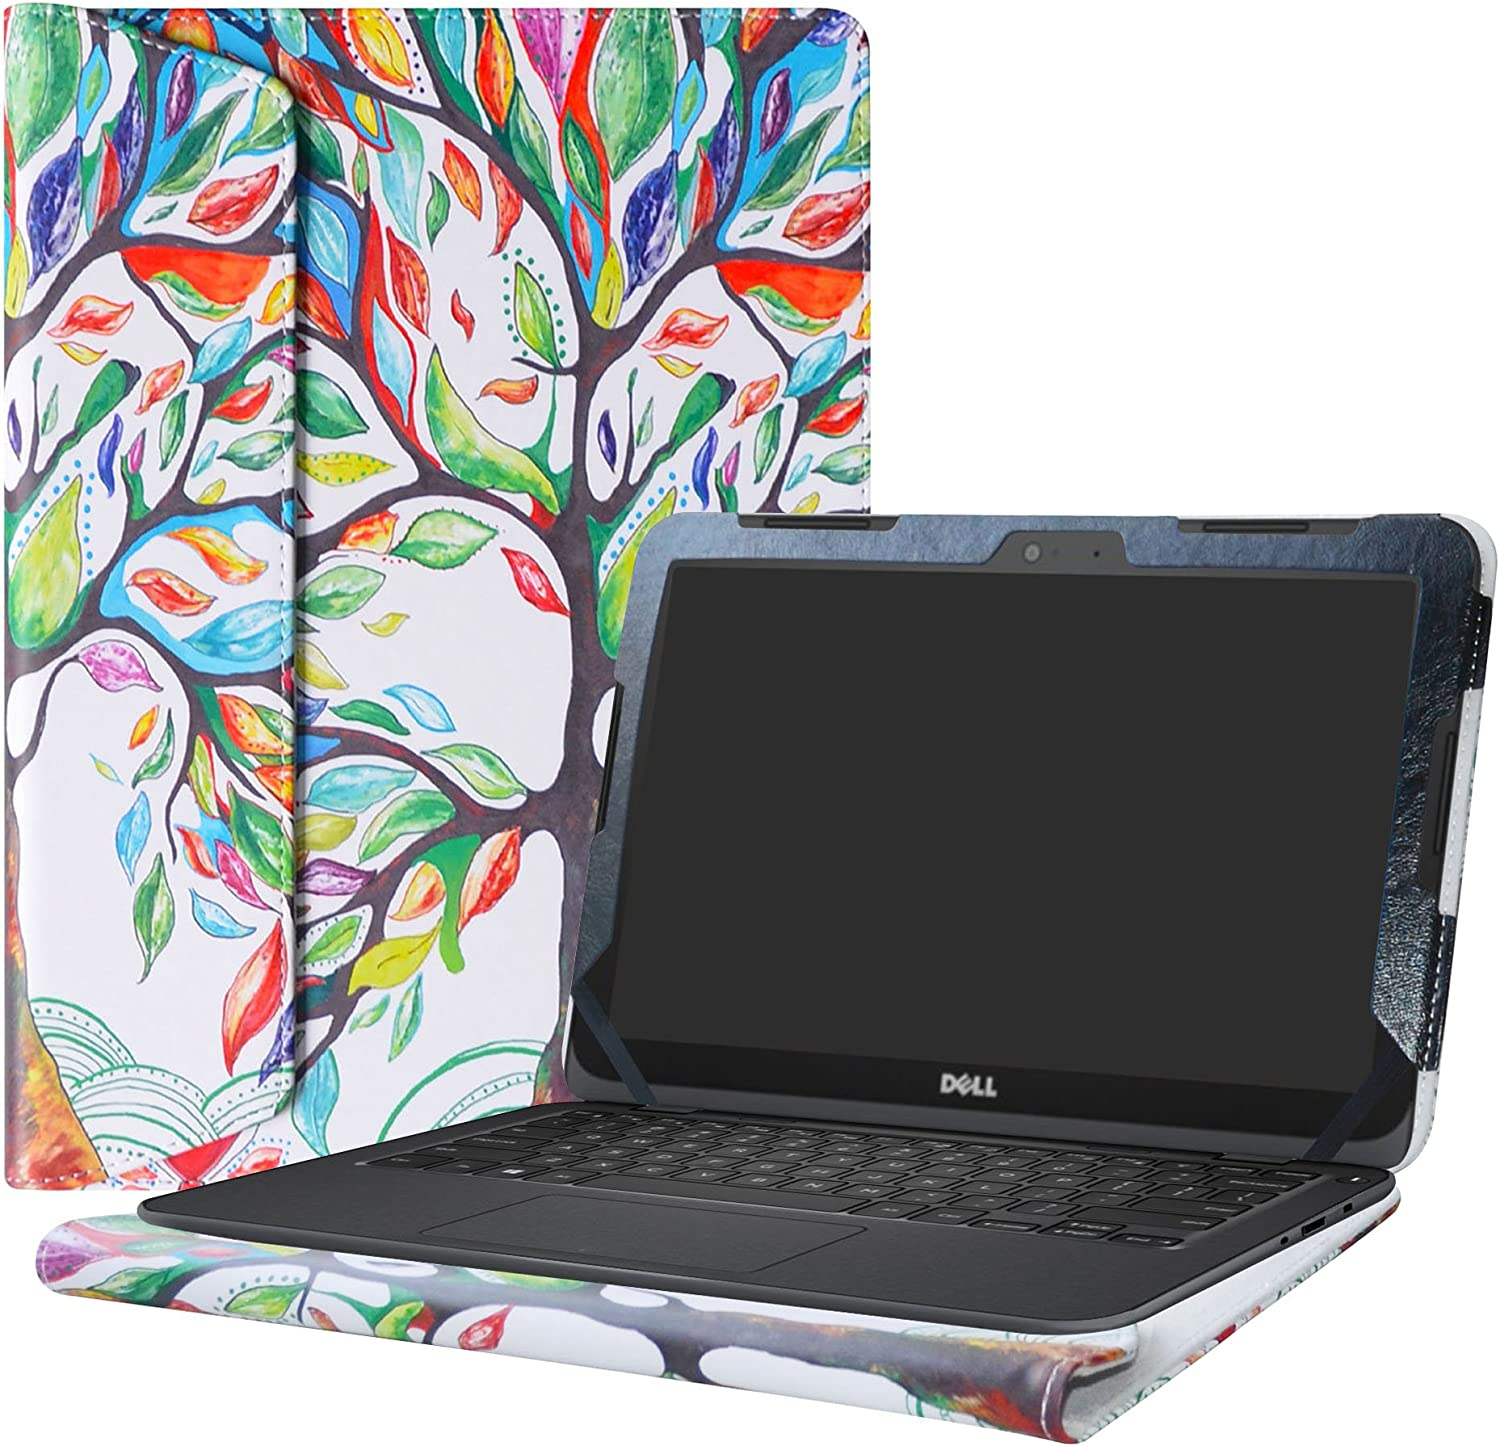 "Alapmk Protective Case Cover for 11.6"" Dell Inspiron 11 3180 3162 3164 Series Laptop(Warning:Not fit Inspiron 11 3137 3138 3147 3148 Series),Love Tree"